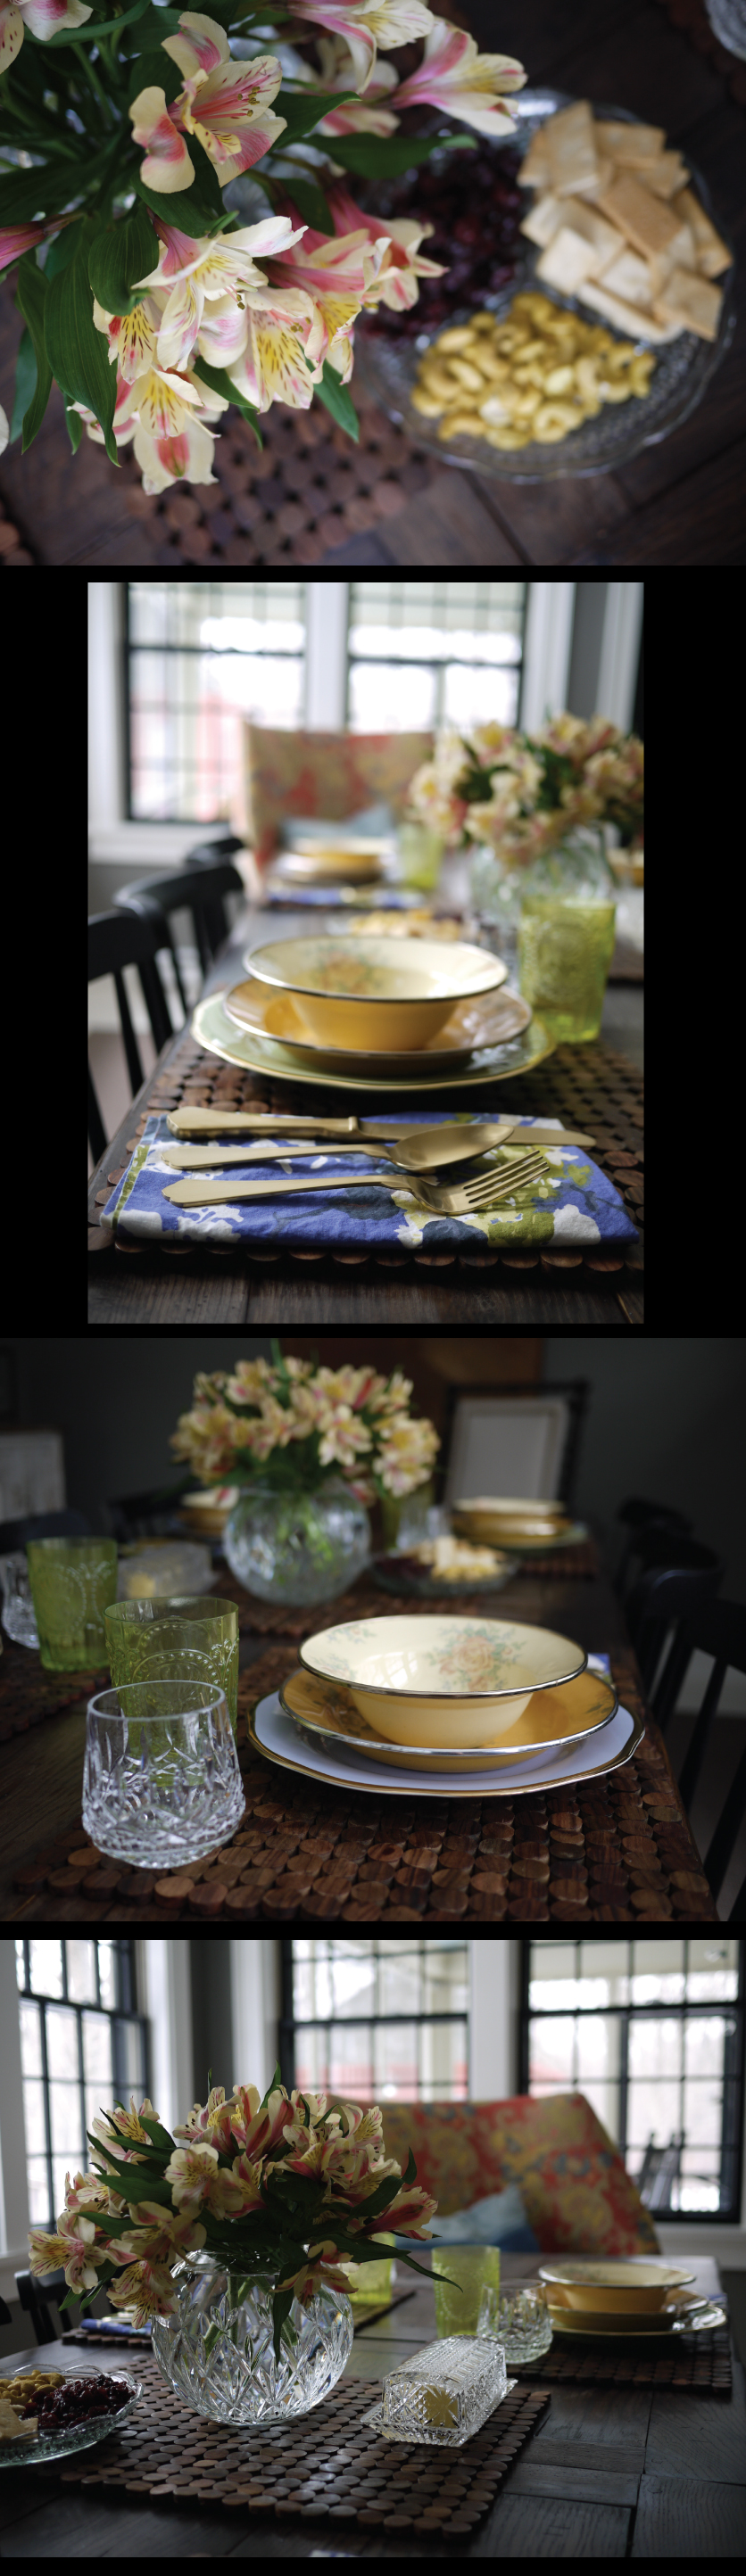 Tablescape-lunch-with-friends